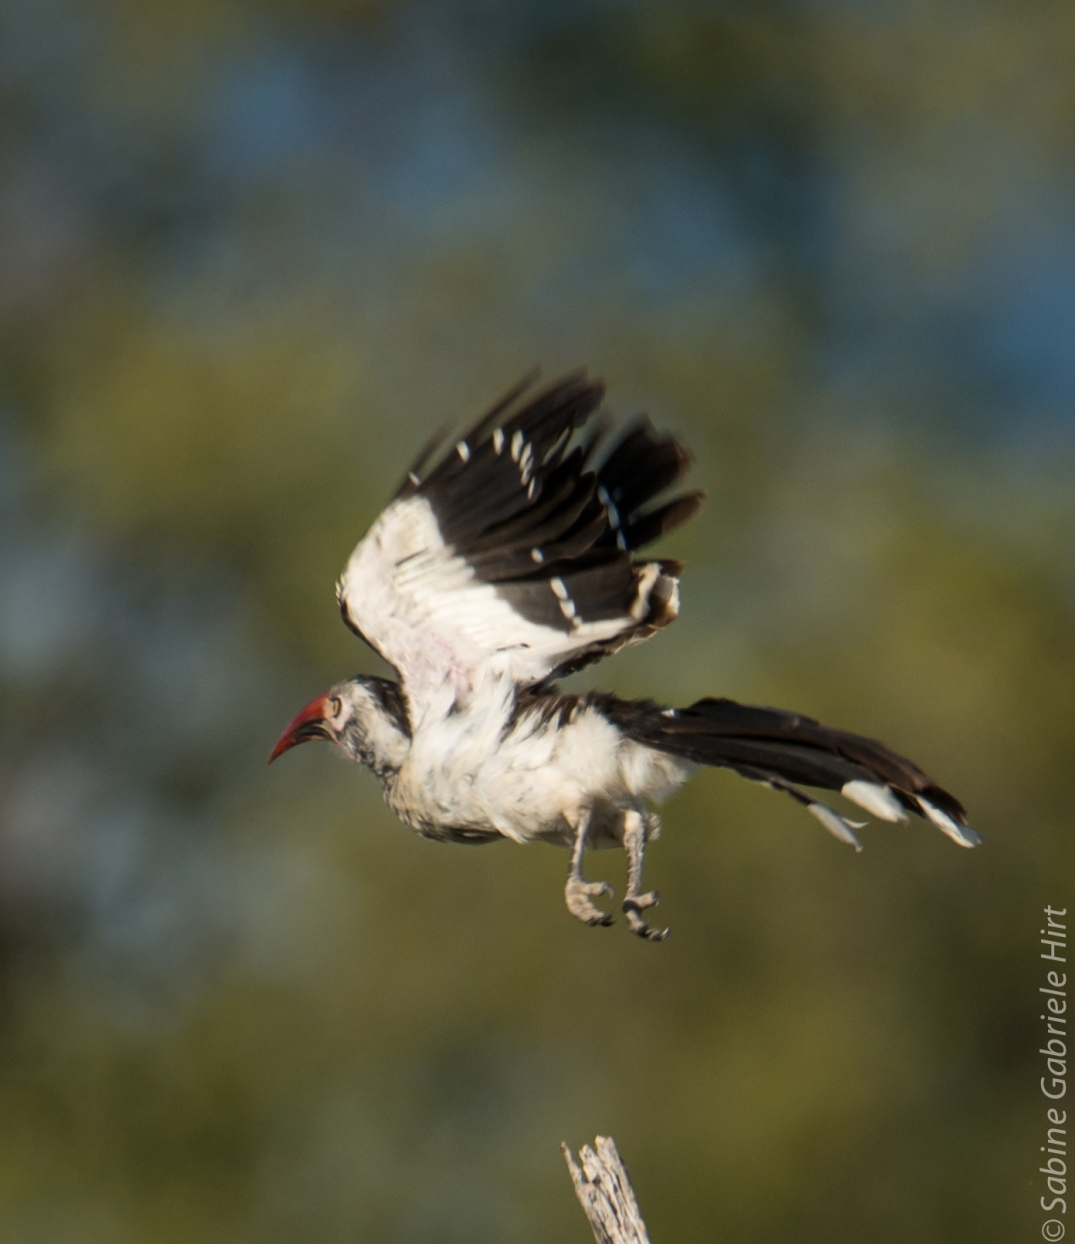 birds-in-flight-red-billed-hornbill